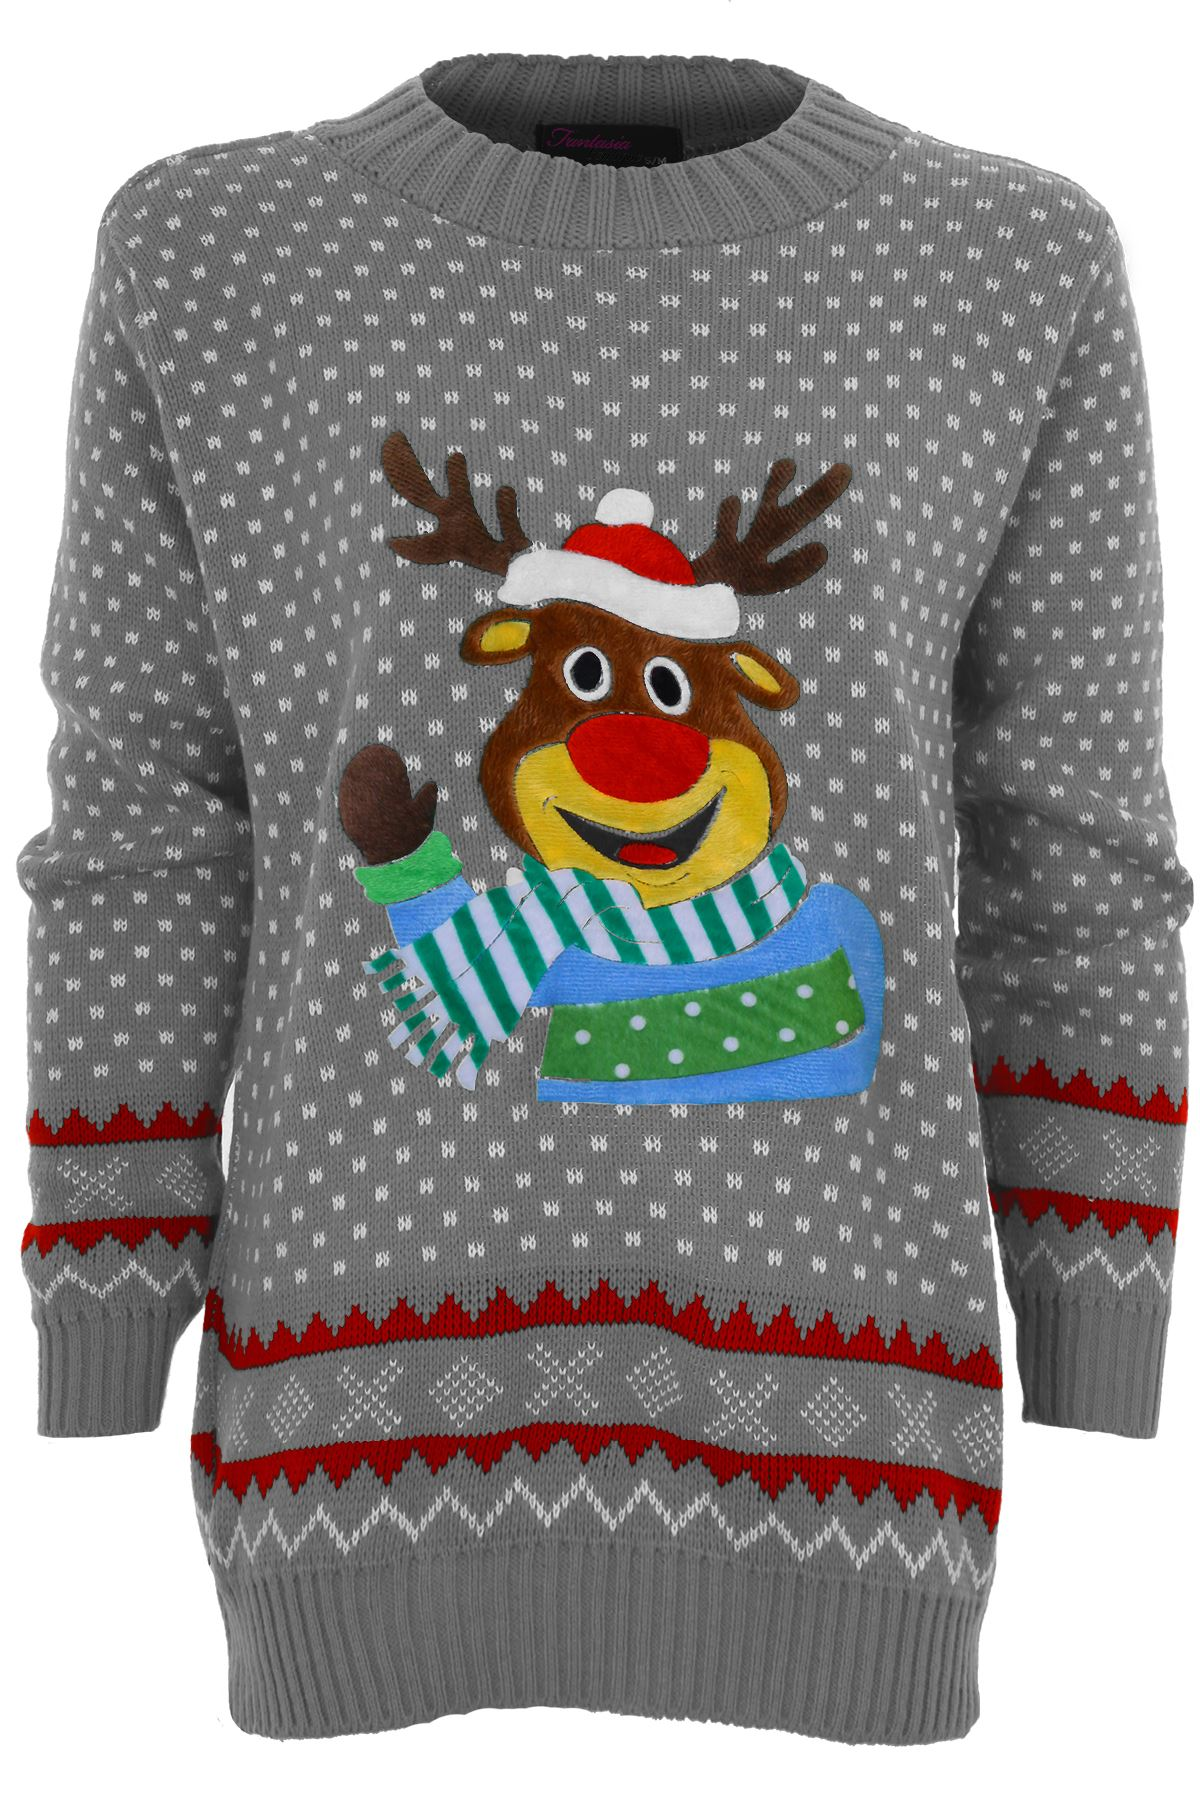 Olaf Christmas Jumper Knitting Pattern : Ladies Knitted Christmas Reindeer Snow Santa Olaf Minion Womens T-Shirt ...